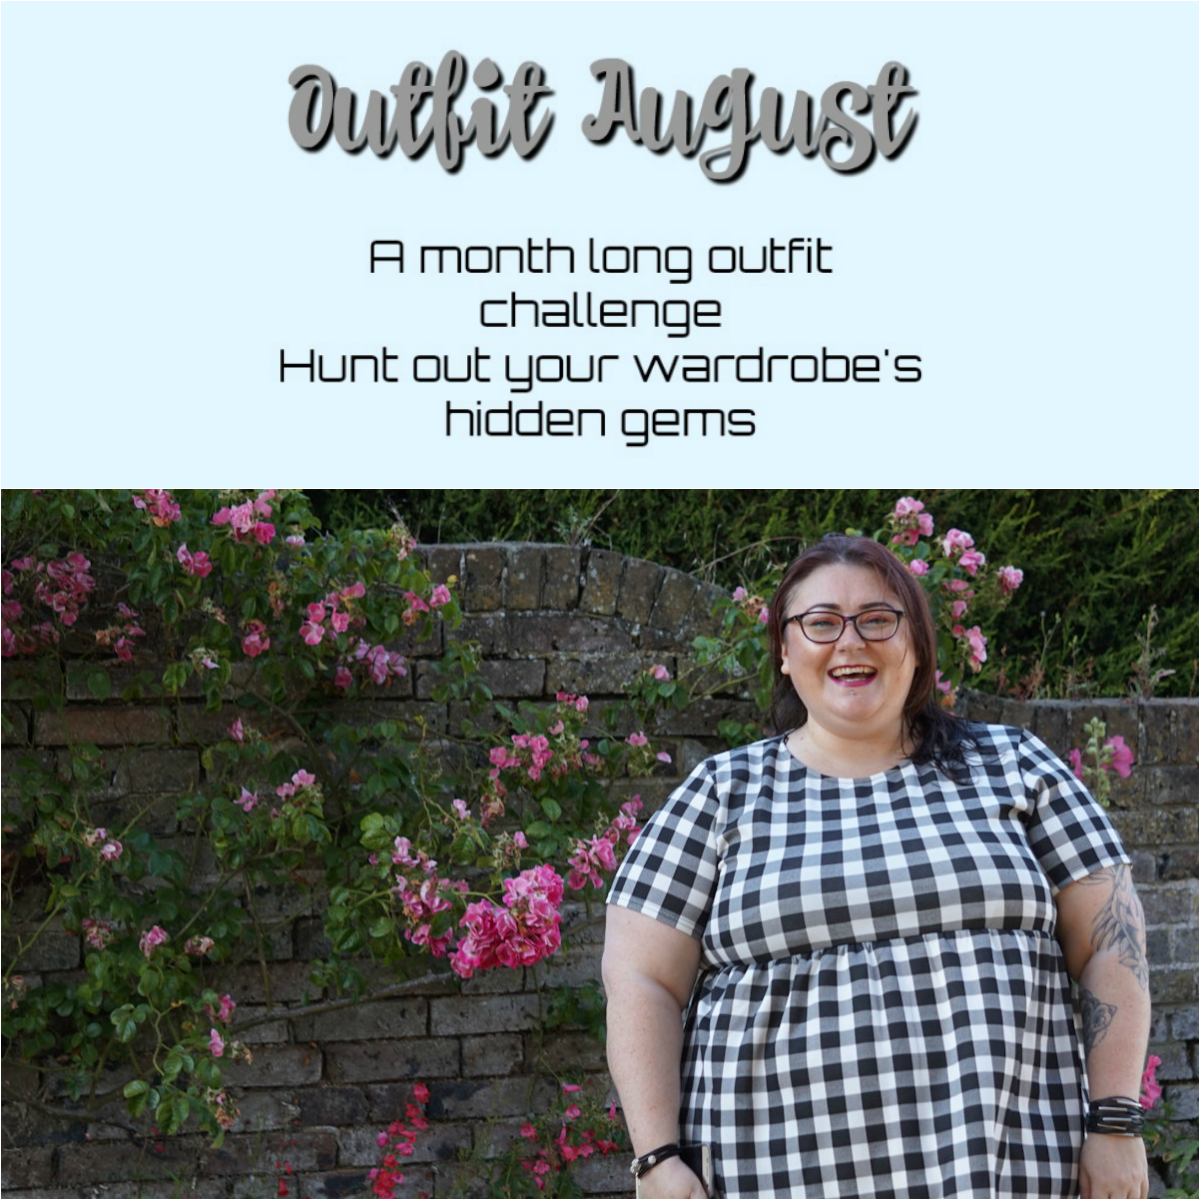 OUTFIT-AUGUST-2017-GINGHAM-MINI-SMOCK-DRESS // WWW.XLOVELEAHX.CO.UK